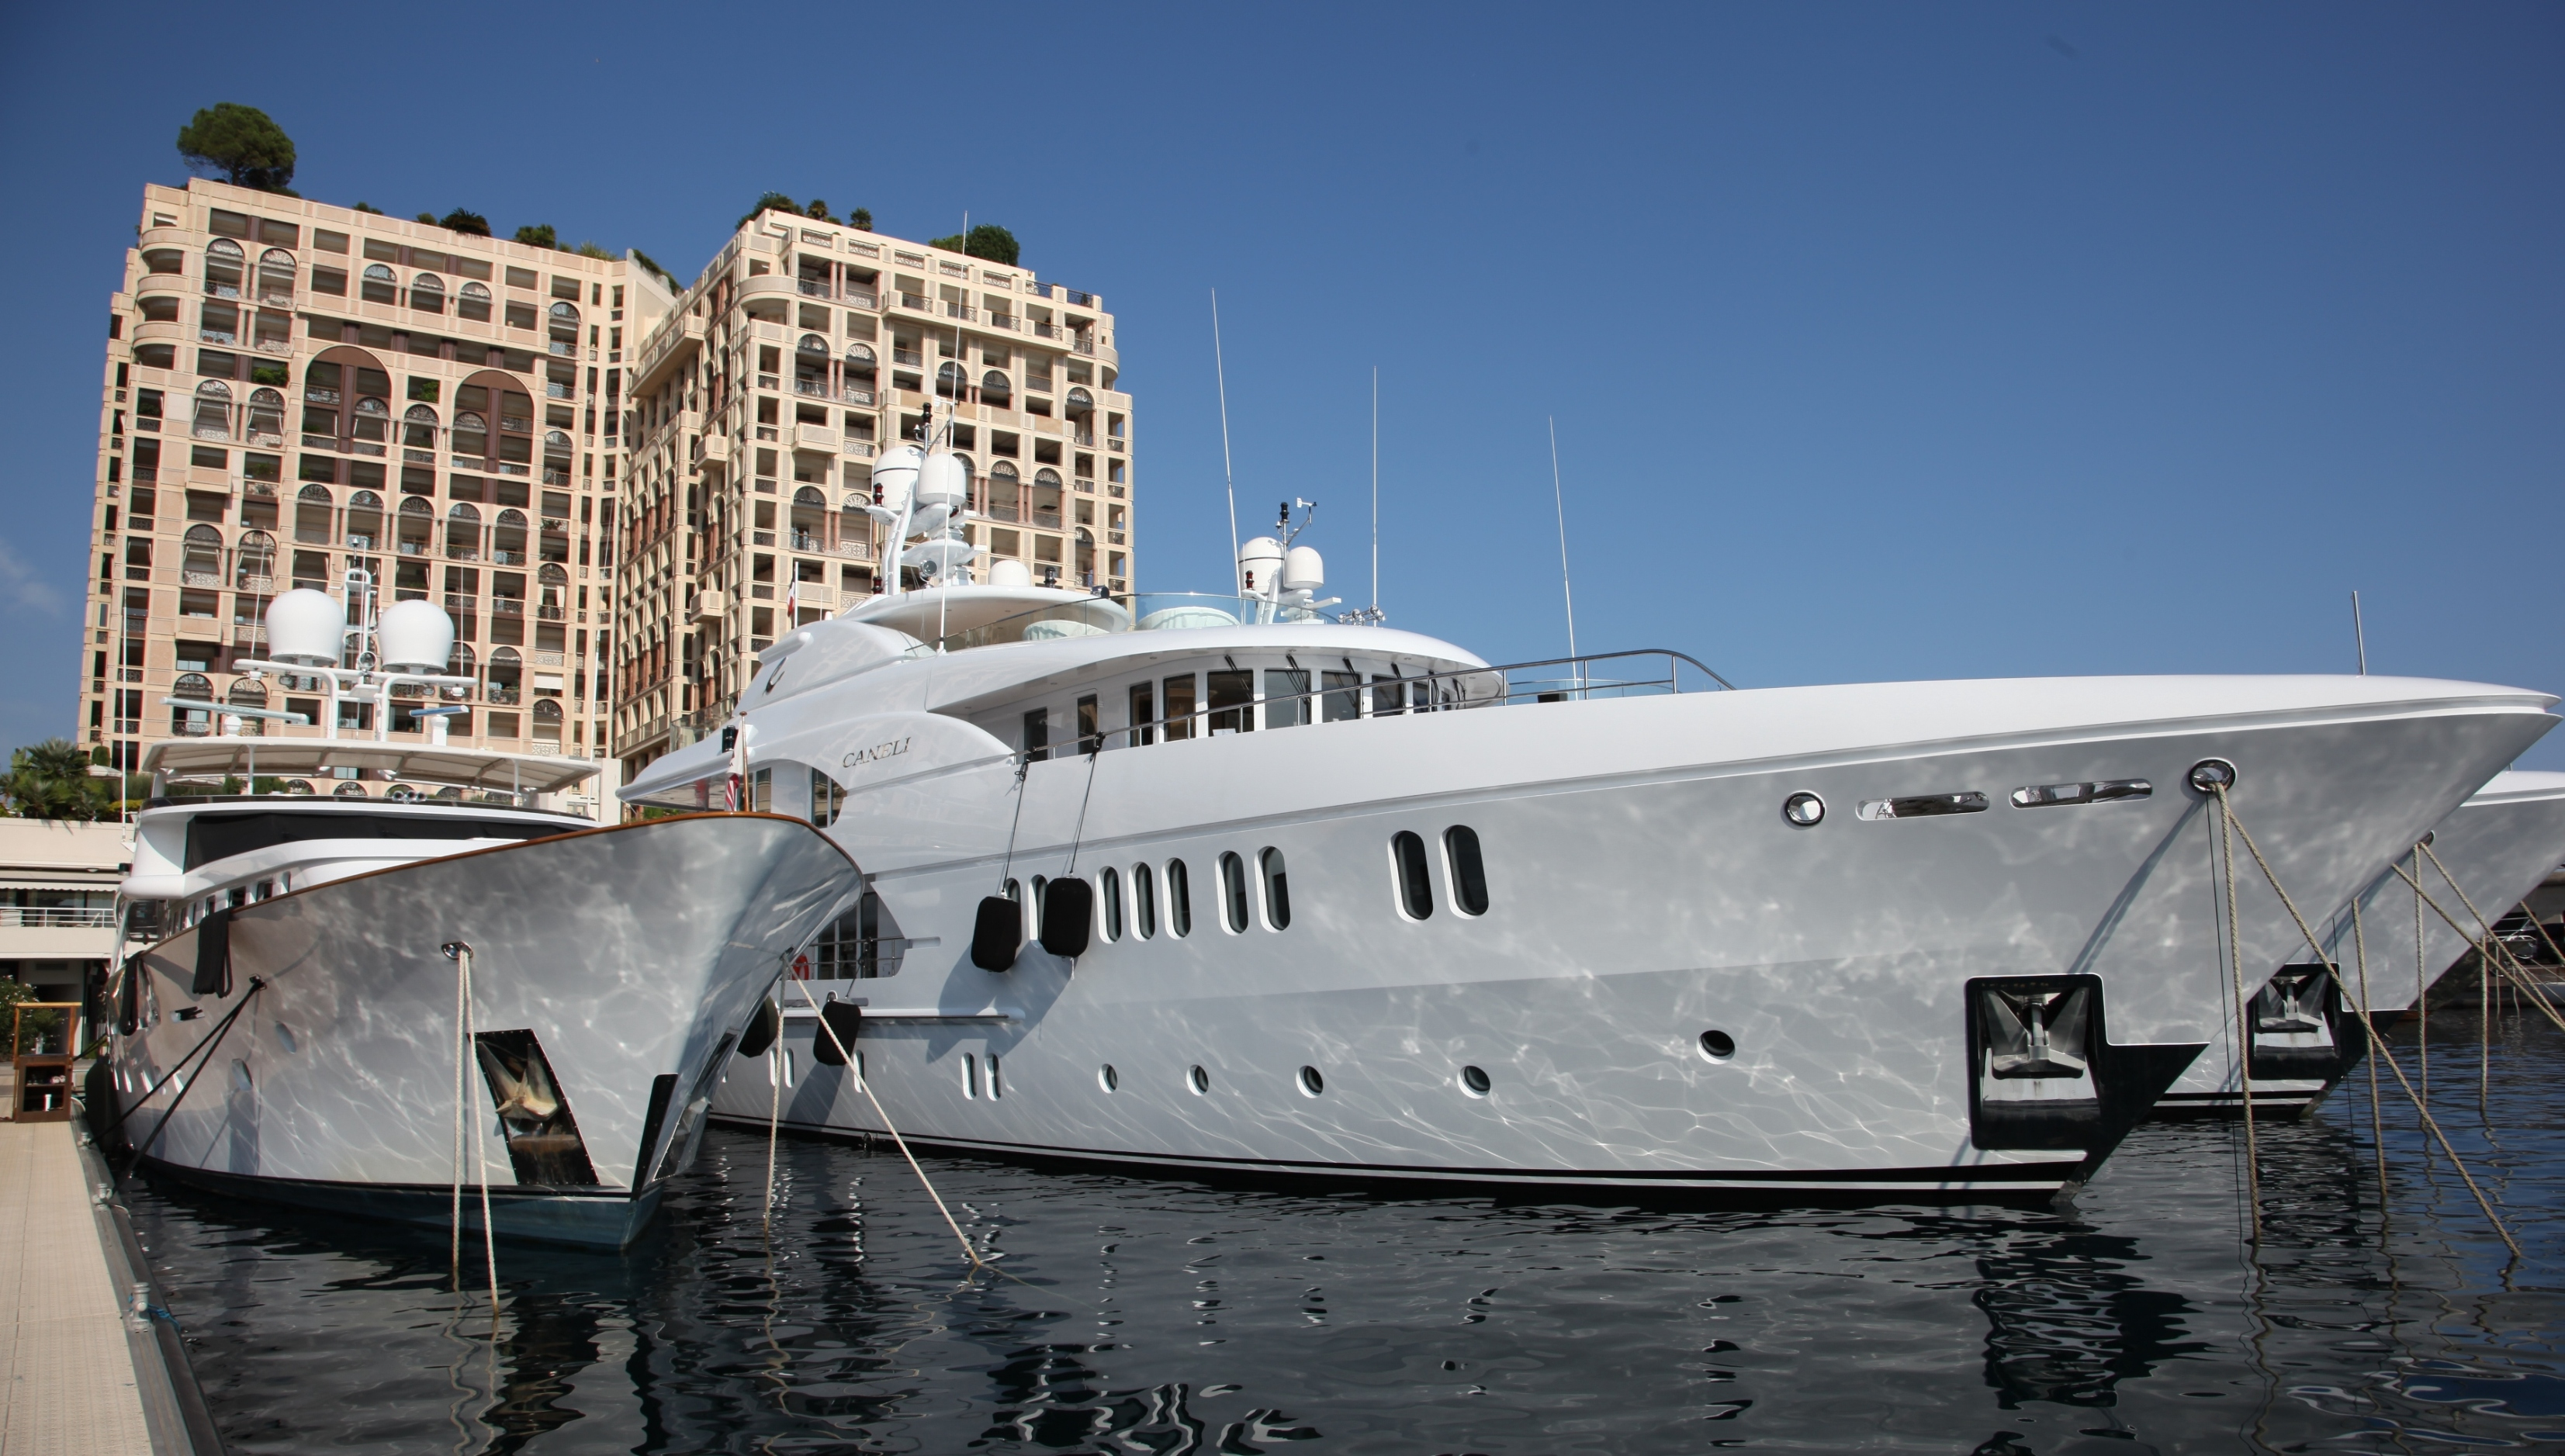 Motor yacht WATERLILY and CANELI are 44 m (143 ft) steel Royal Denship ...